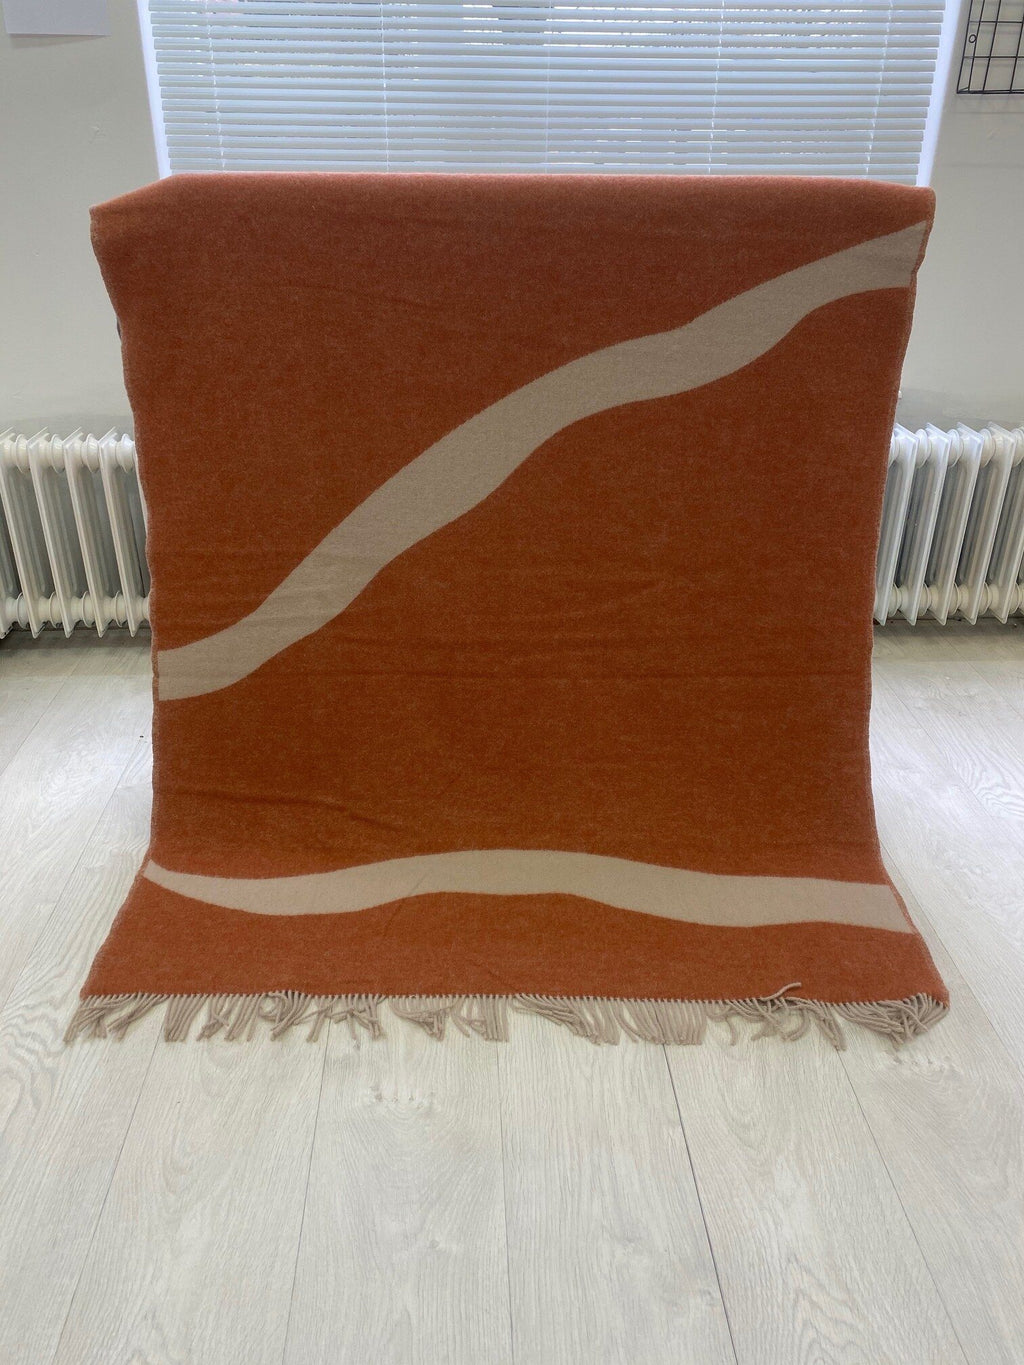 "PURE NEW WOOL THROW ""NATURE"" - ORANGE / BEIGE - BY FORESTRY WOOL throw FORESTRY WOOL"